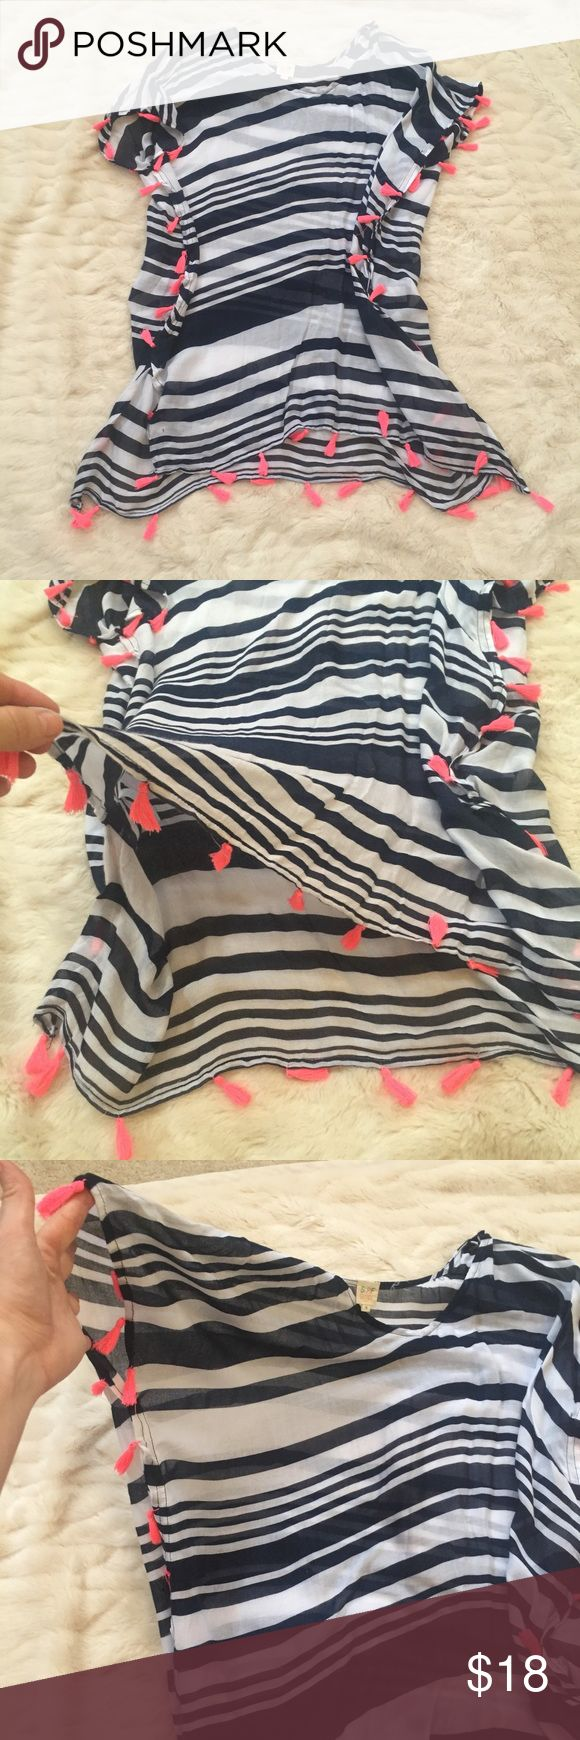 Navy, white and coral tunic/bathing suit cover up Navy and white stripes with coral fringe detailing. Can be worn as a tunic or bathing suit cover up. Adorable and perfect for spring/summer! Medium. Never worn, without tags. Surf Gypsy Tops